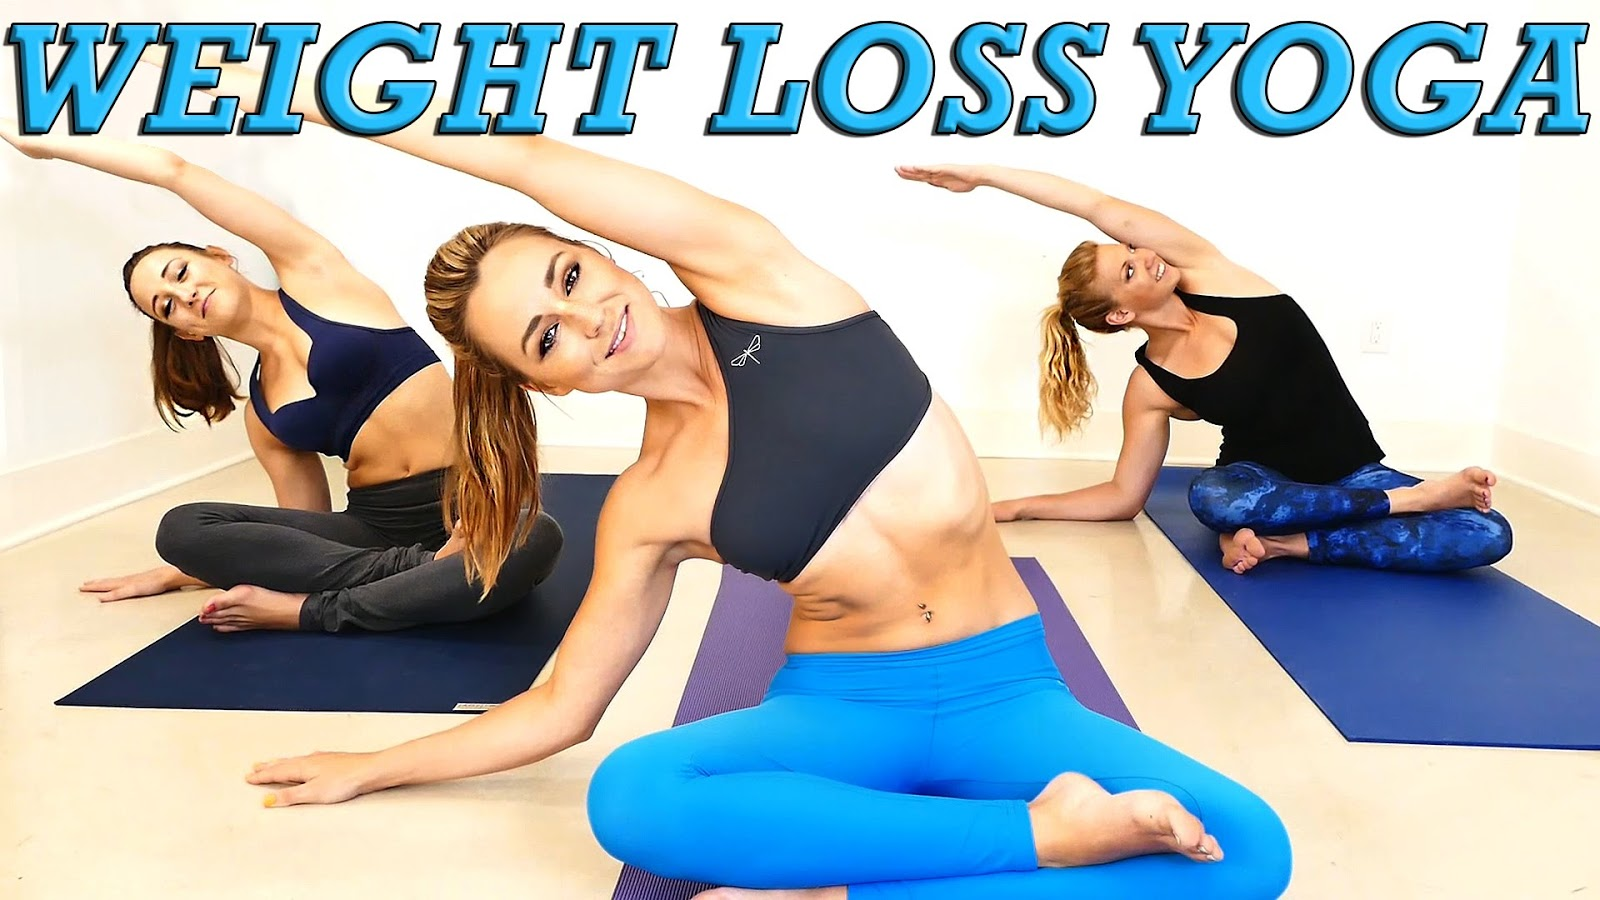 How to lose 20 pounds in 2 weeks - yoga workout videos - Tipsmonk